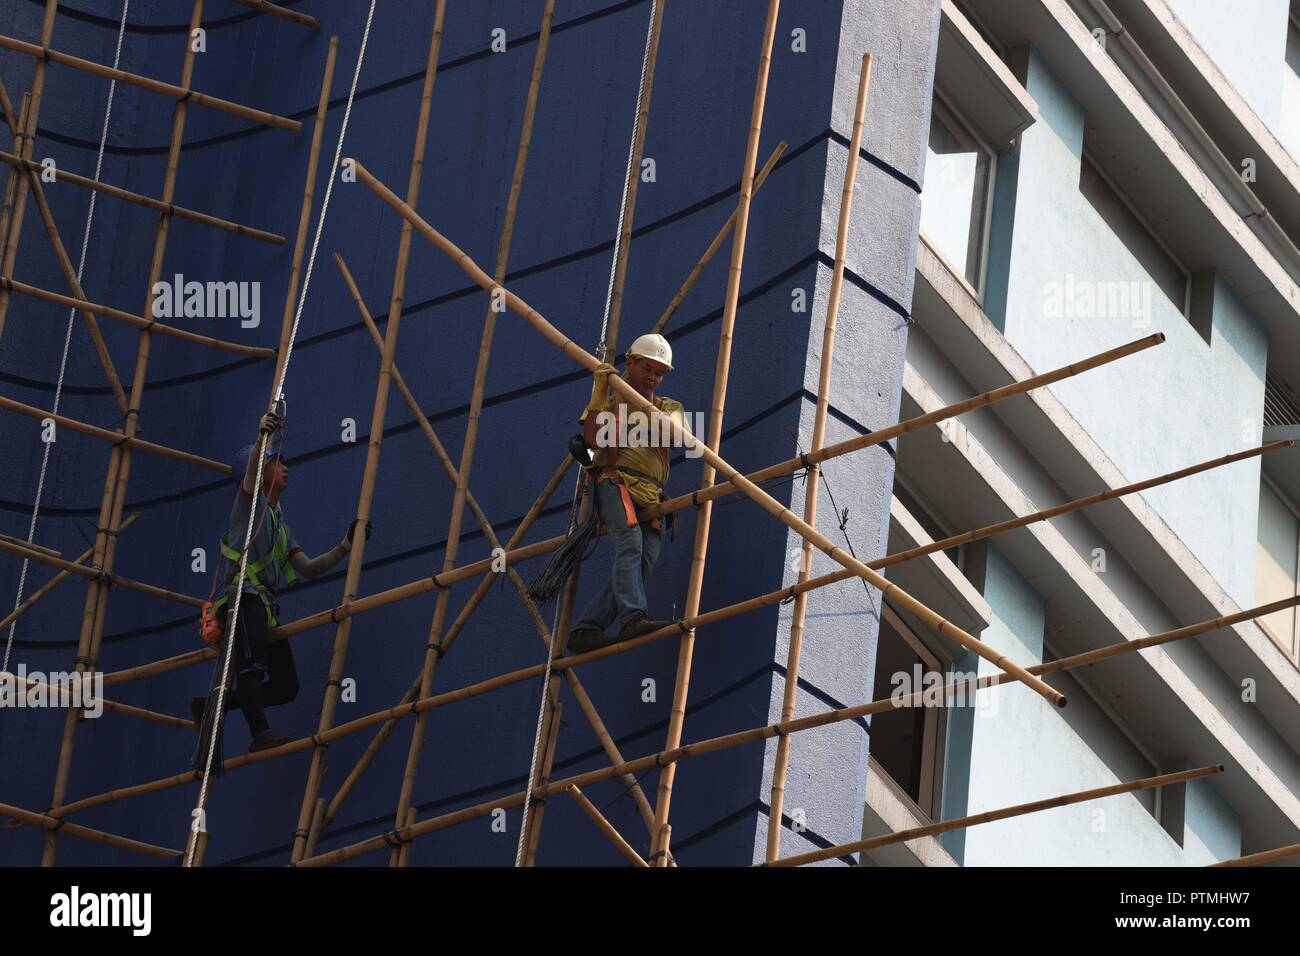 Hong Kong, CHINA. 10th Oct, 2018. A worker carrying a bamboo on the scaffolding outside the hotel awaiting to be demolished. Hong Kong is where Chinese traditional art of bamboo scaffolding is being kept as a classic architectural craft.Oct-10, 2018 Hong Kong.ZUMA/Liau Chung-ren Credit: Liau Chung-ren/ZUMA Wire/Alamy Live News - Stock Image